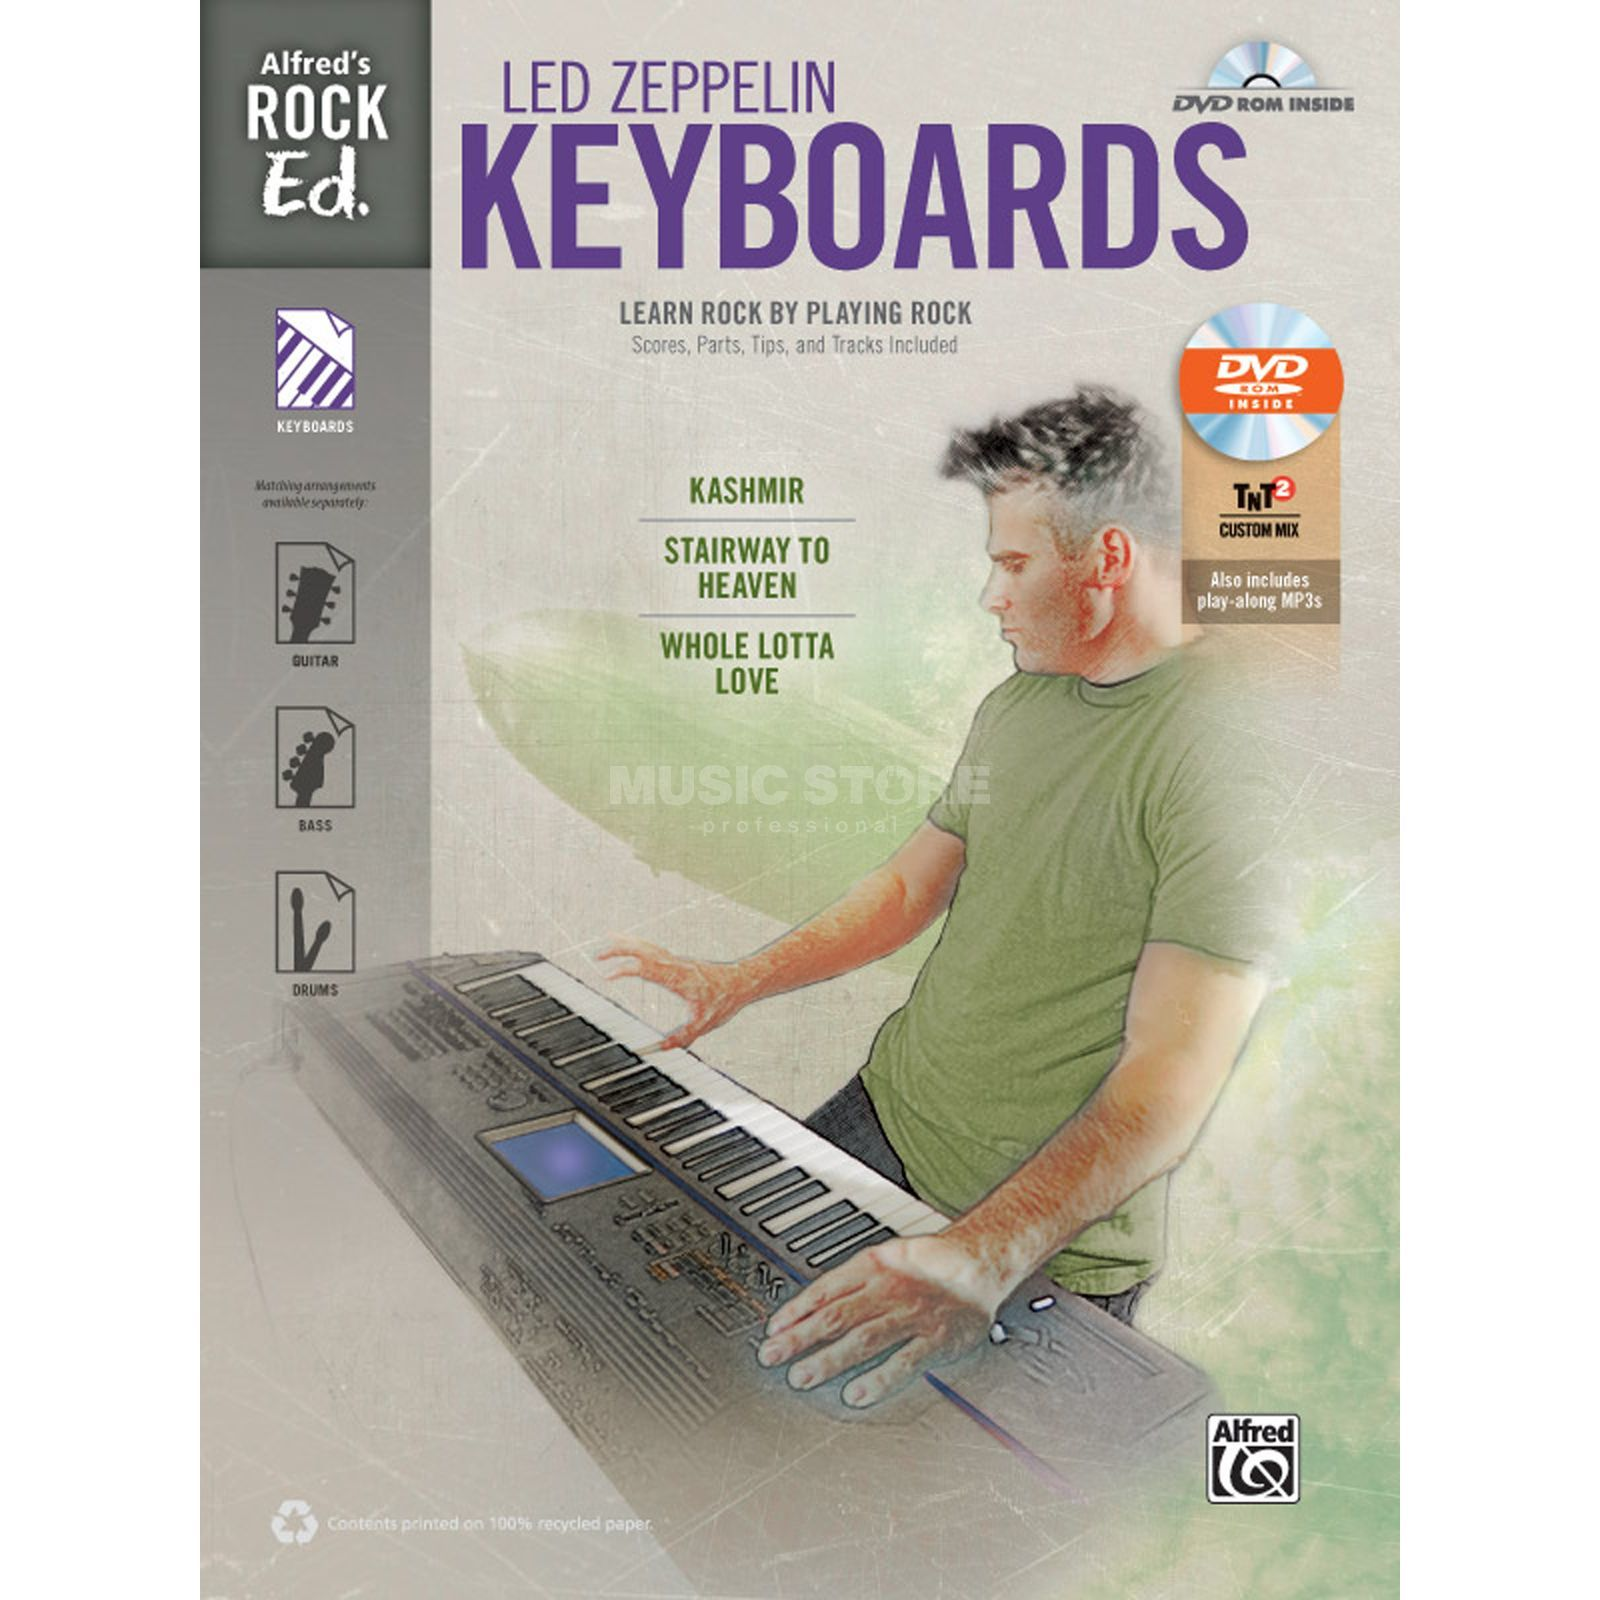 Alfred Music Alfred's Rock Ed.: Led Zeppelin Keyboards Produktbillede